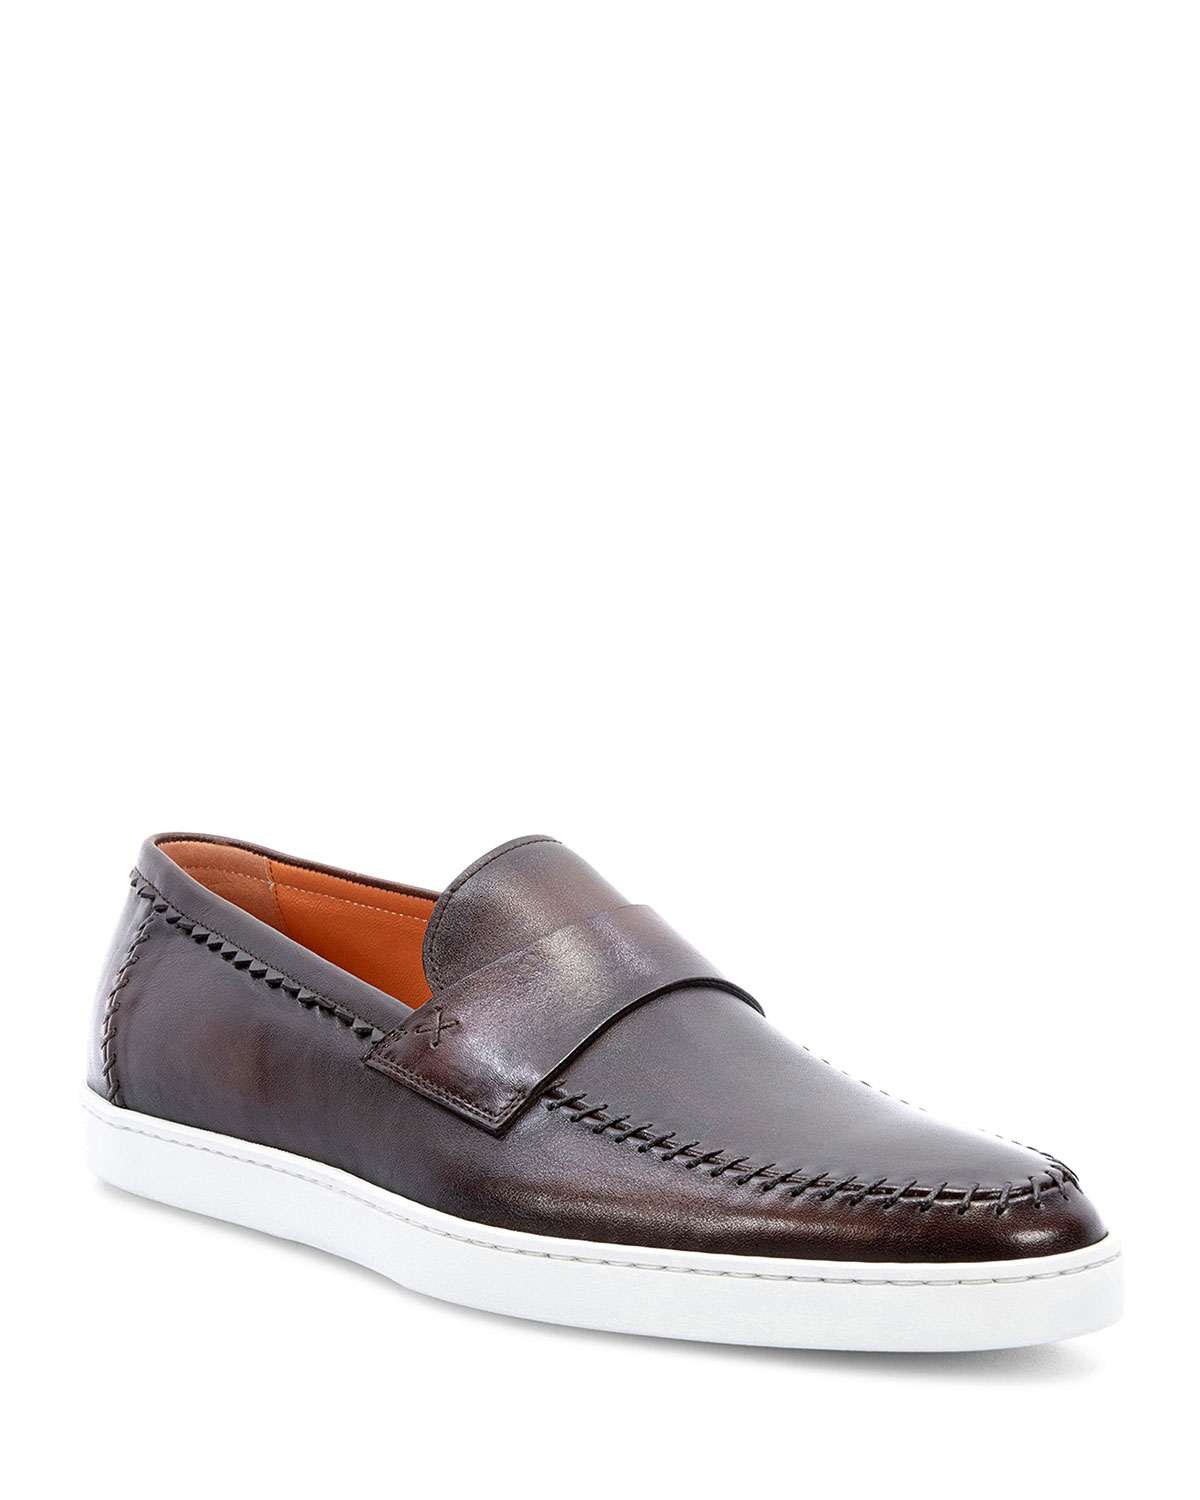 Men's Banker Stitch-Trim Leather Loafers